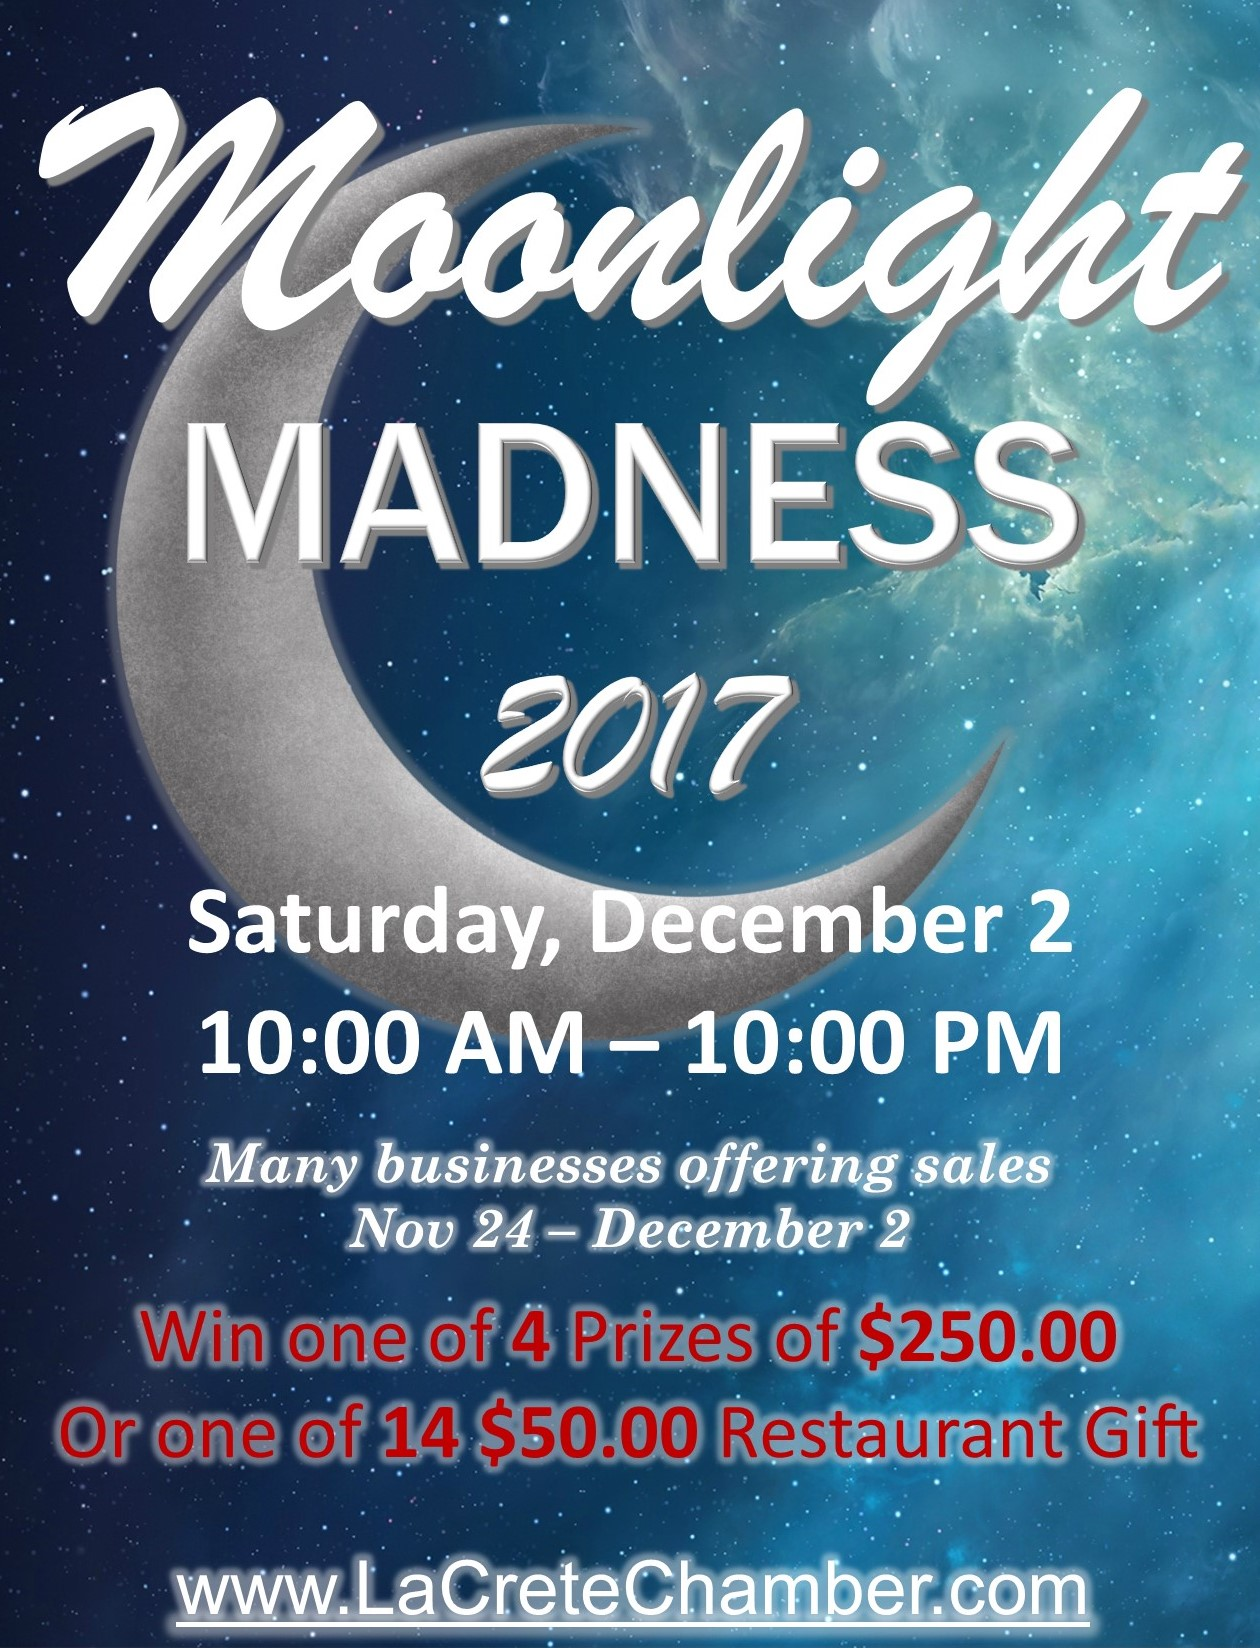 Moonlight Madness 2017 Poster